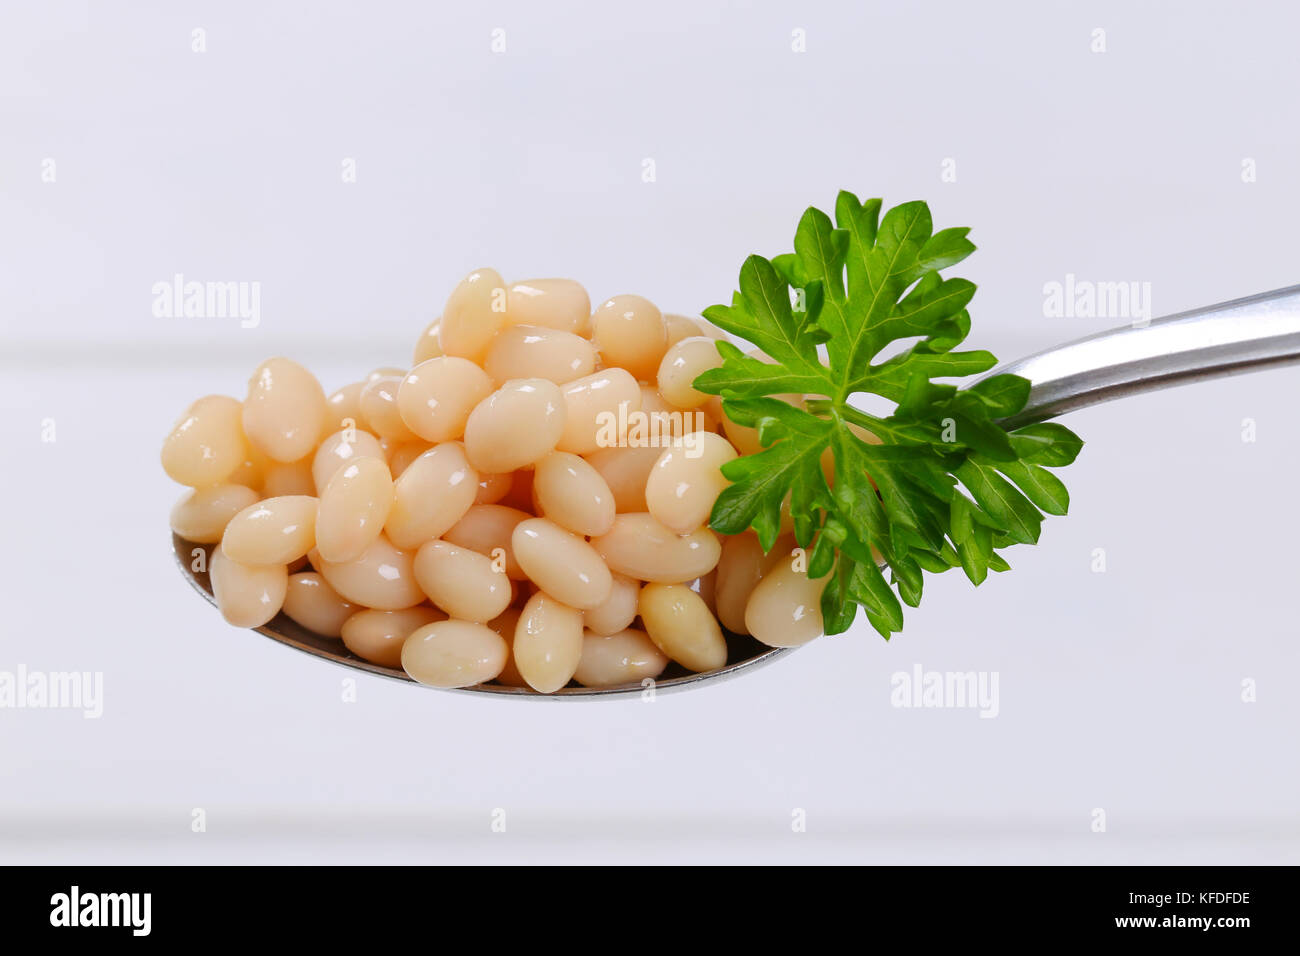 spoon of canned white beans on white wooden background - Stock Image